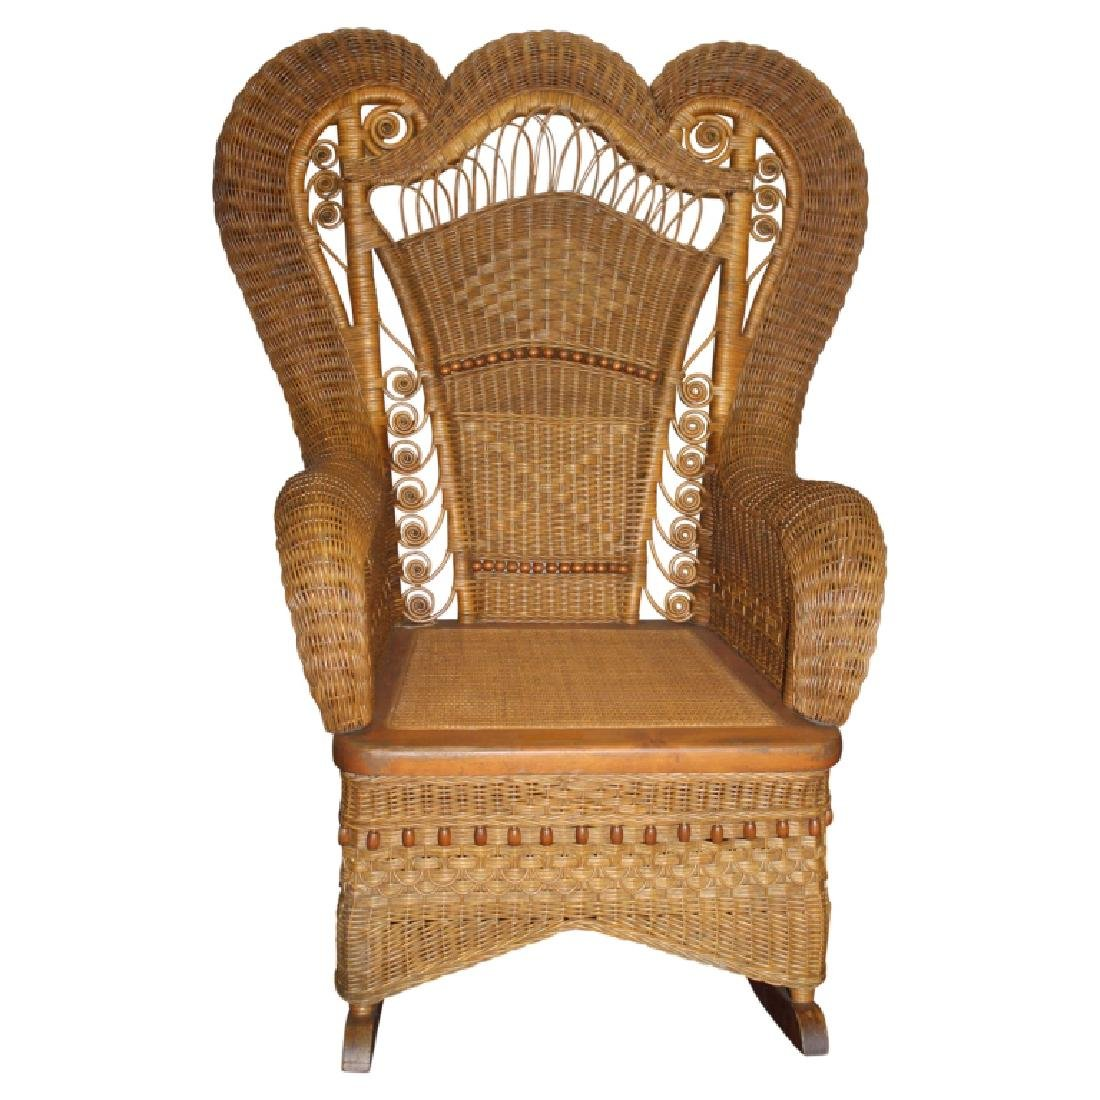 Heywood Wakefield Wicker Style Rocking Chair